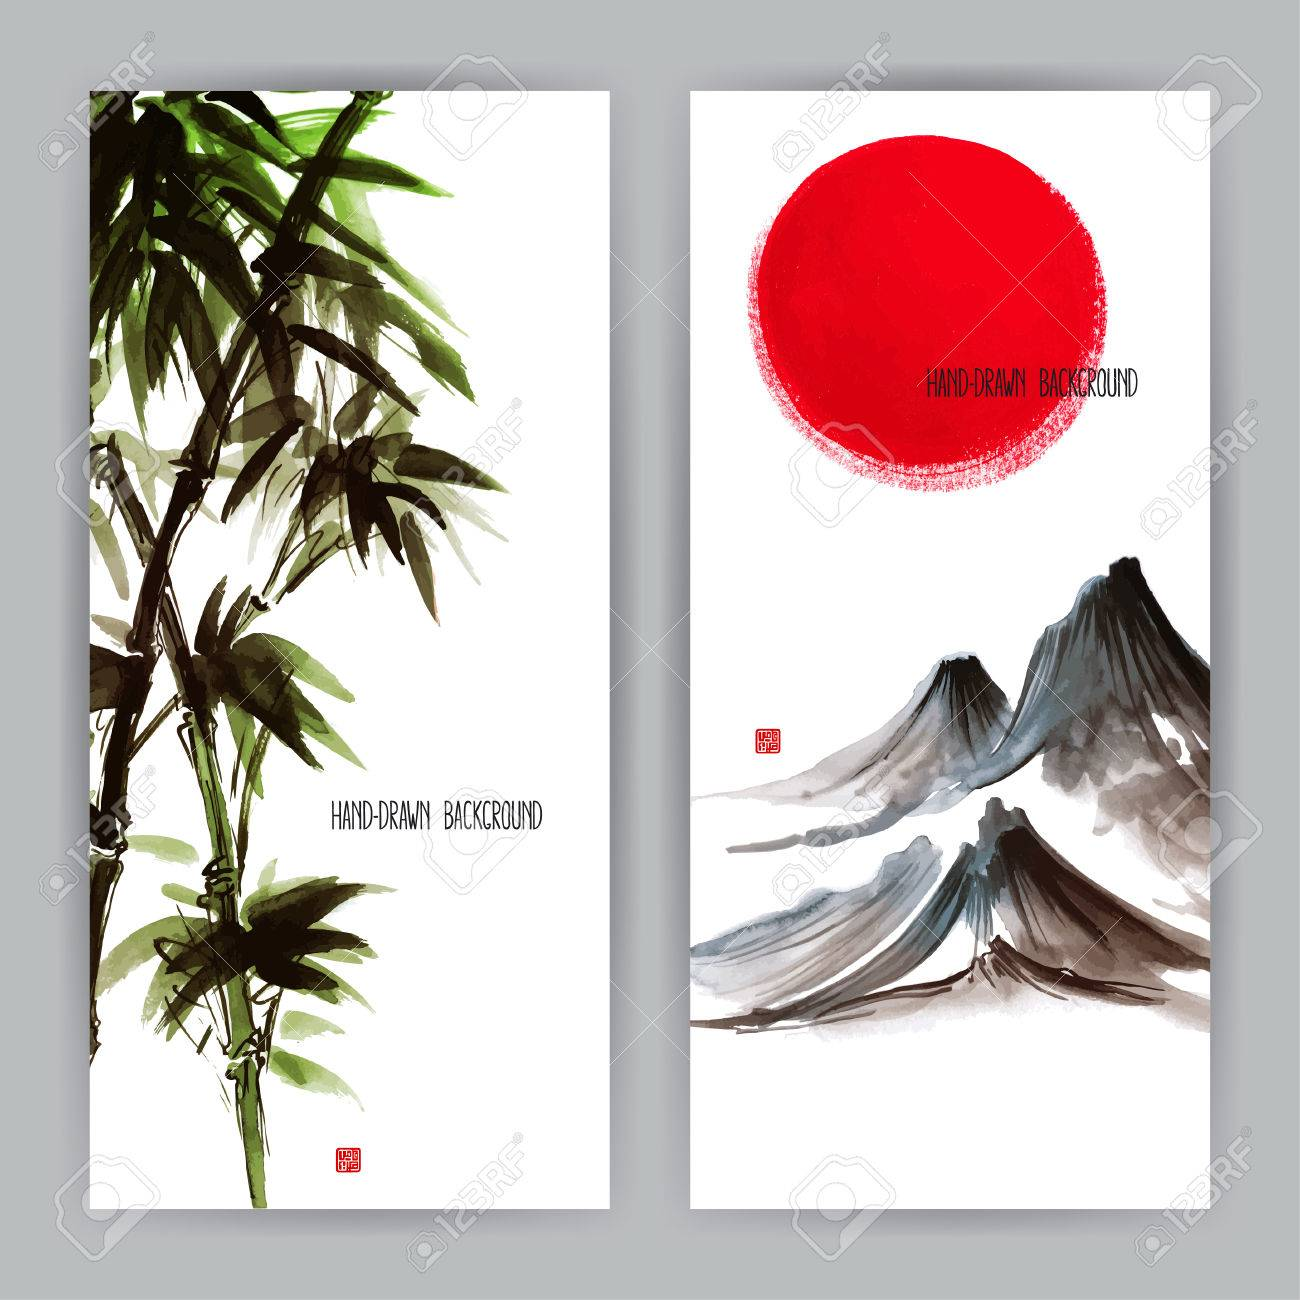 two beautiful banners with Japanese natural motifs. Sumi-e. hand-drawn illustration - 41618877